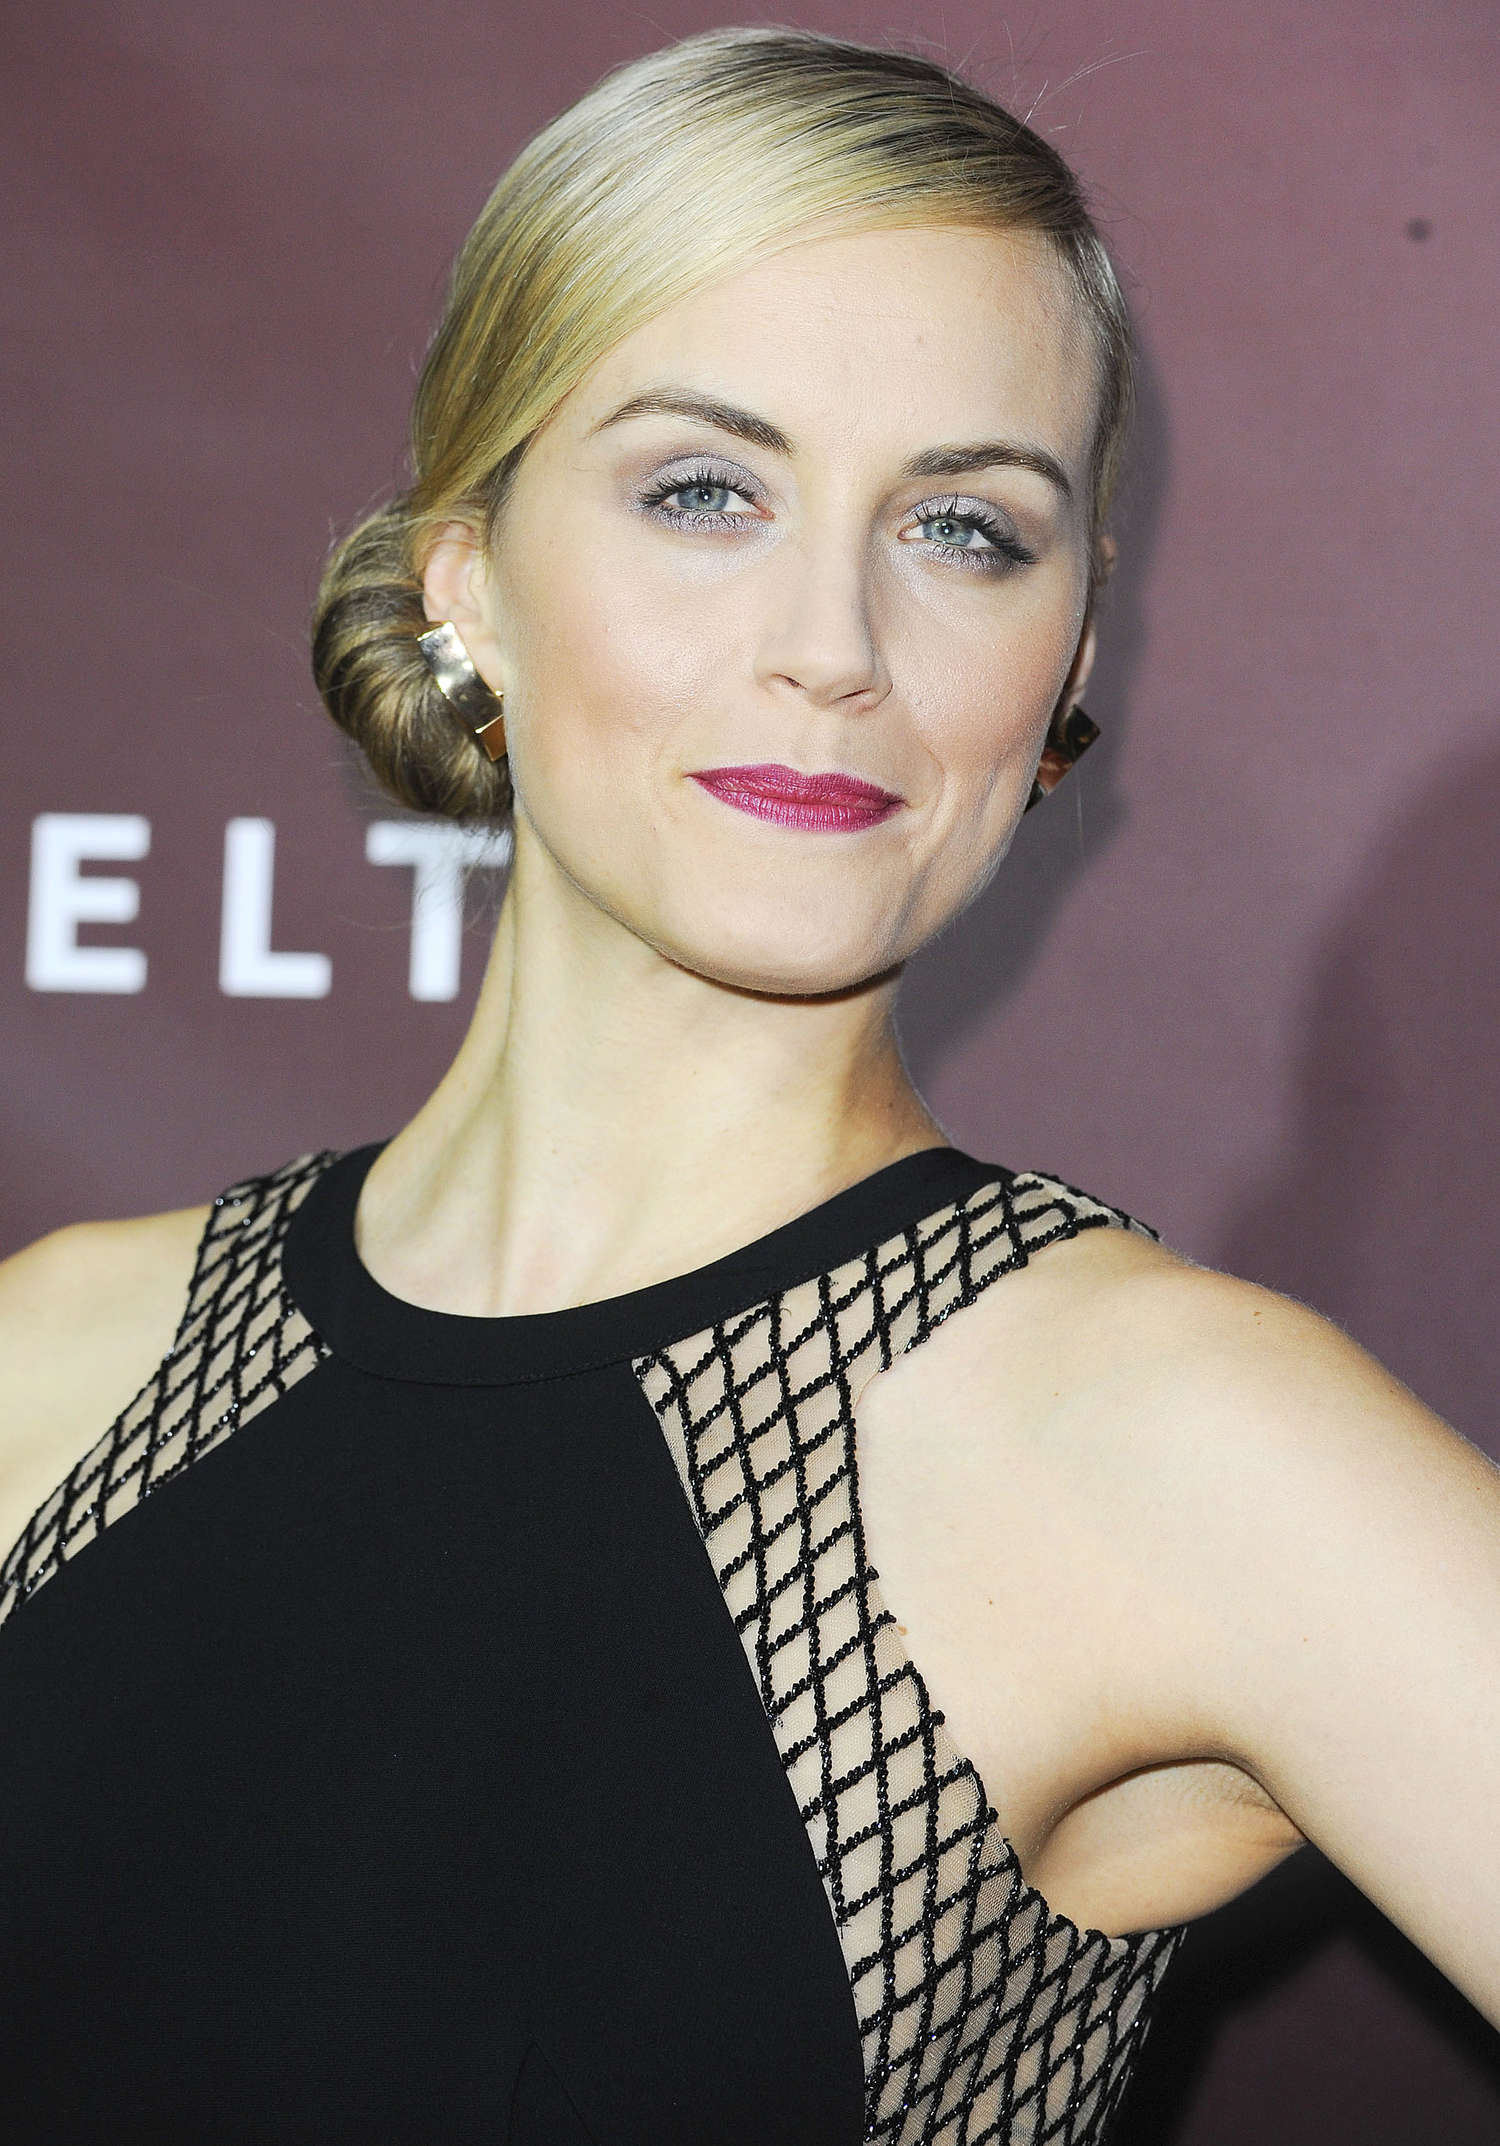 Taylor Schilling The Hollywood Reporters Next Gen Anniversary Gala in Westwood